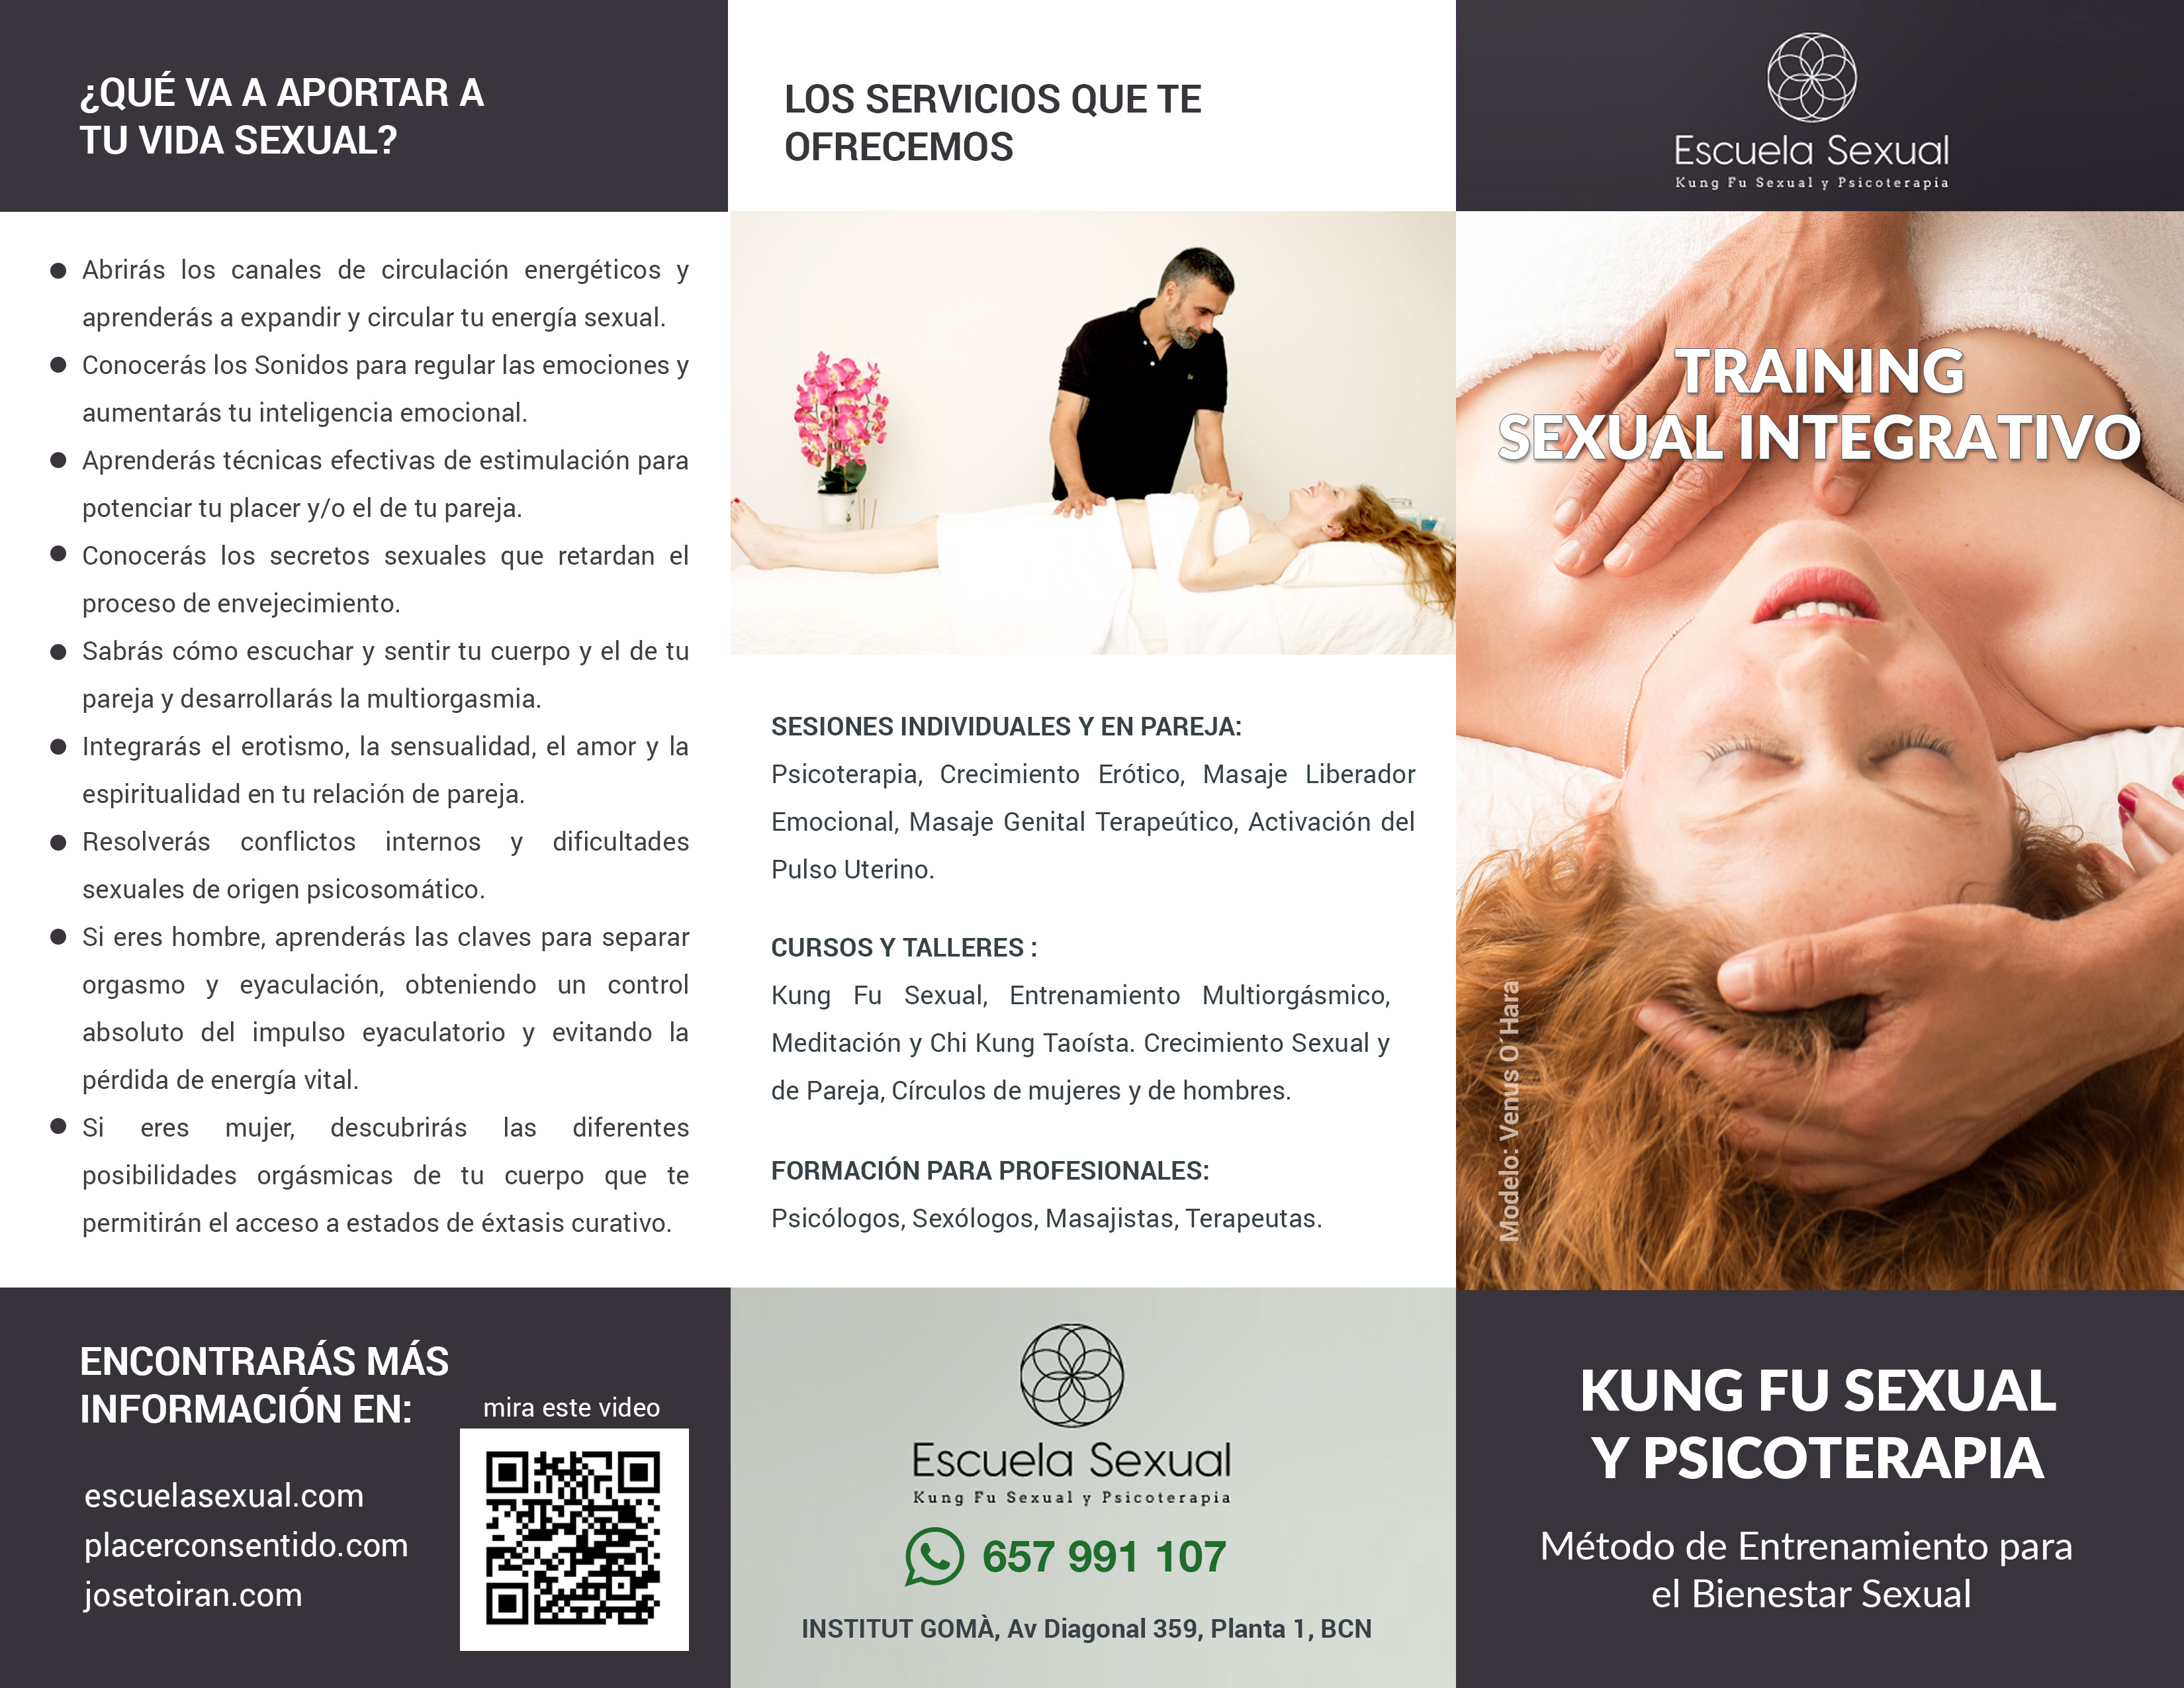 flyer-entrenamiento-sexual-integrativo-a-1